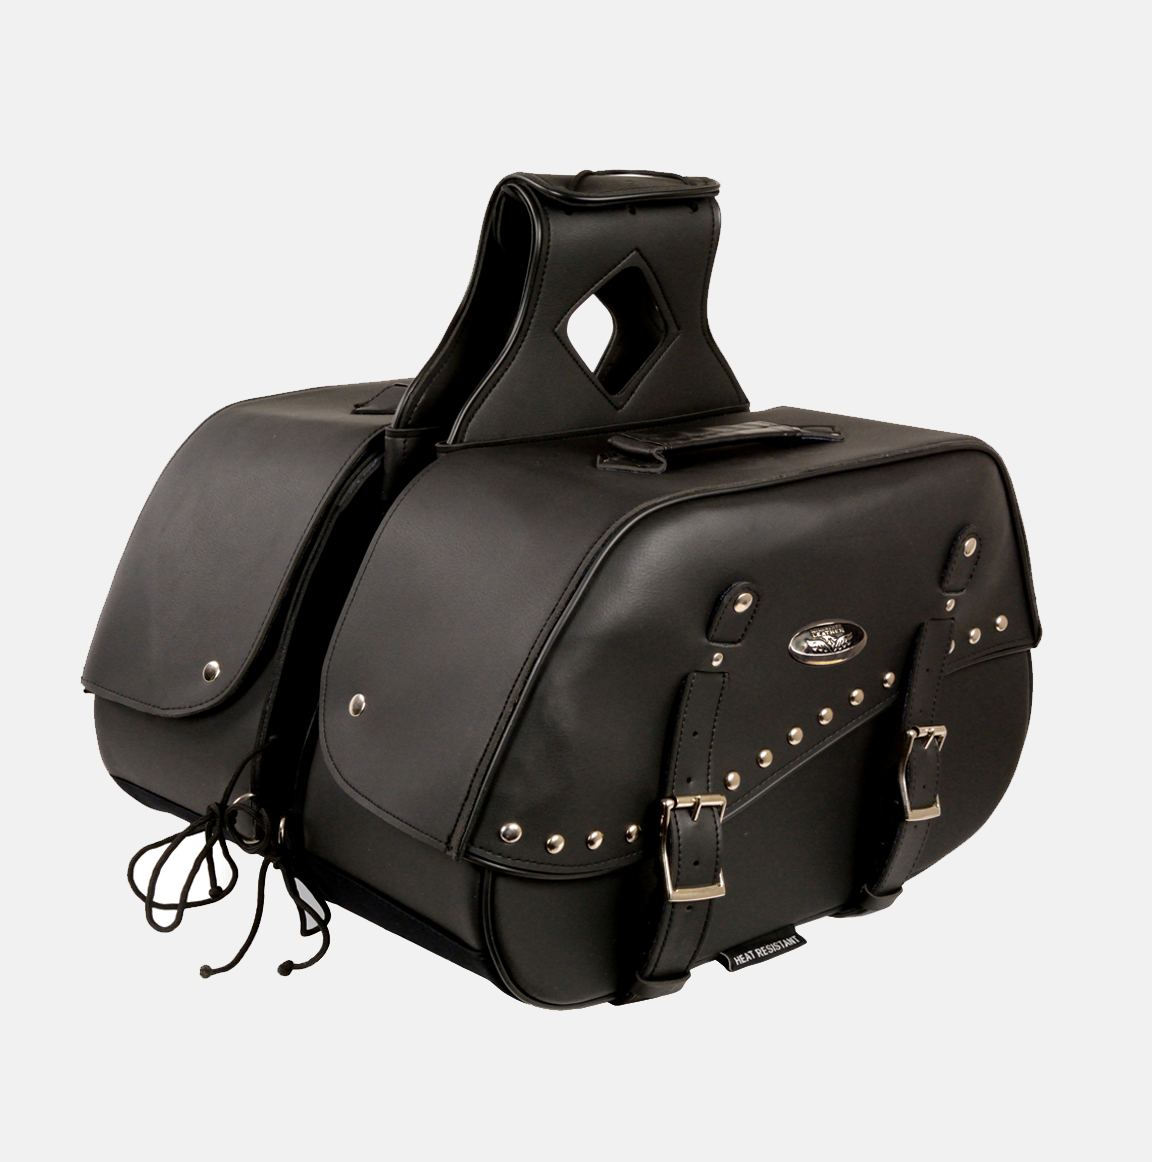 2 strap zip off pvc saddlebag bikers gear online usa